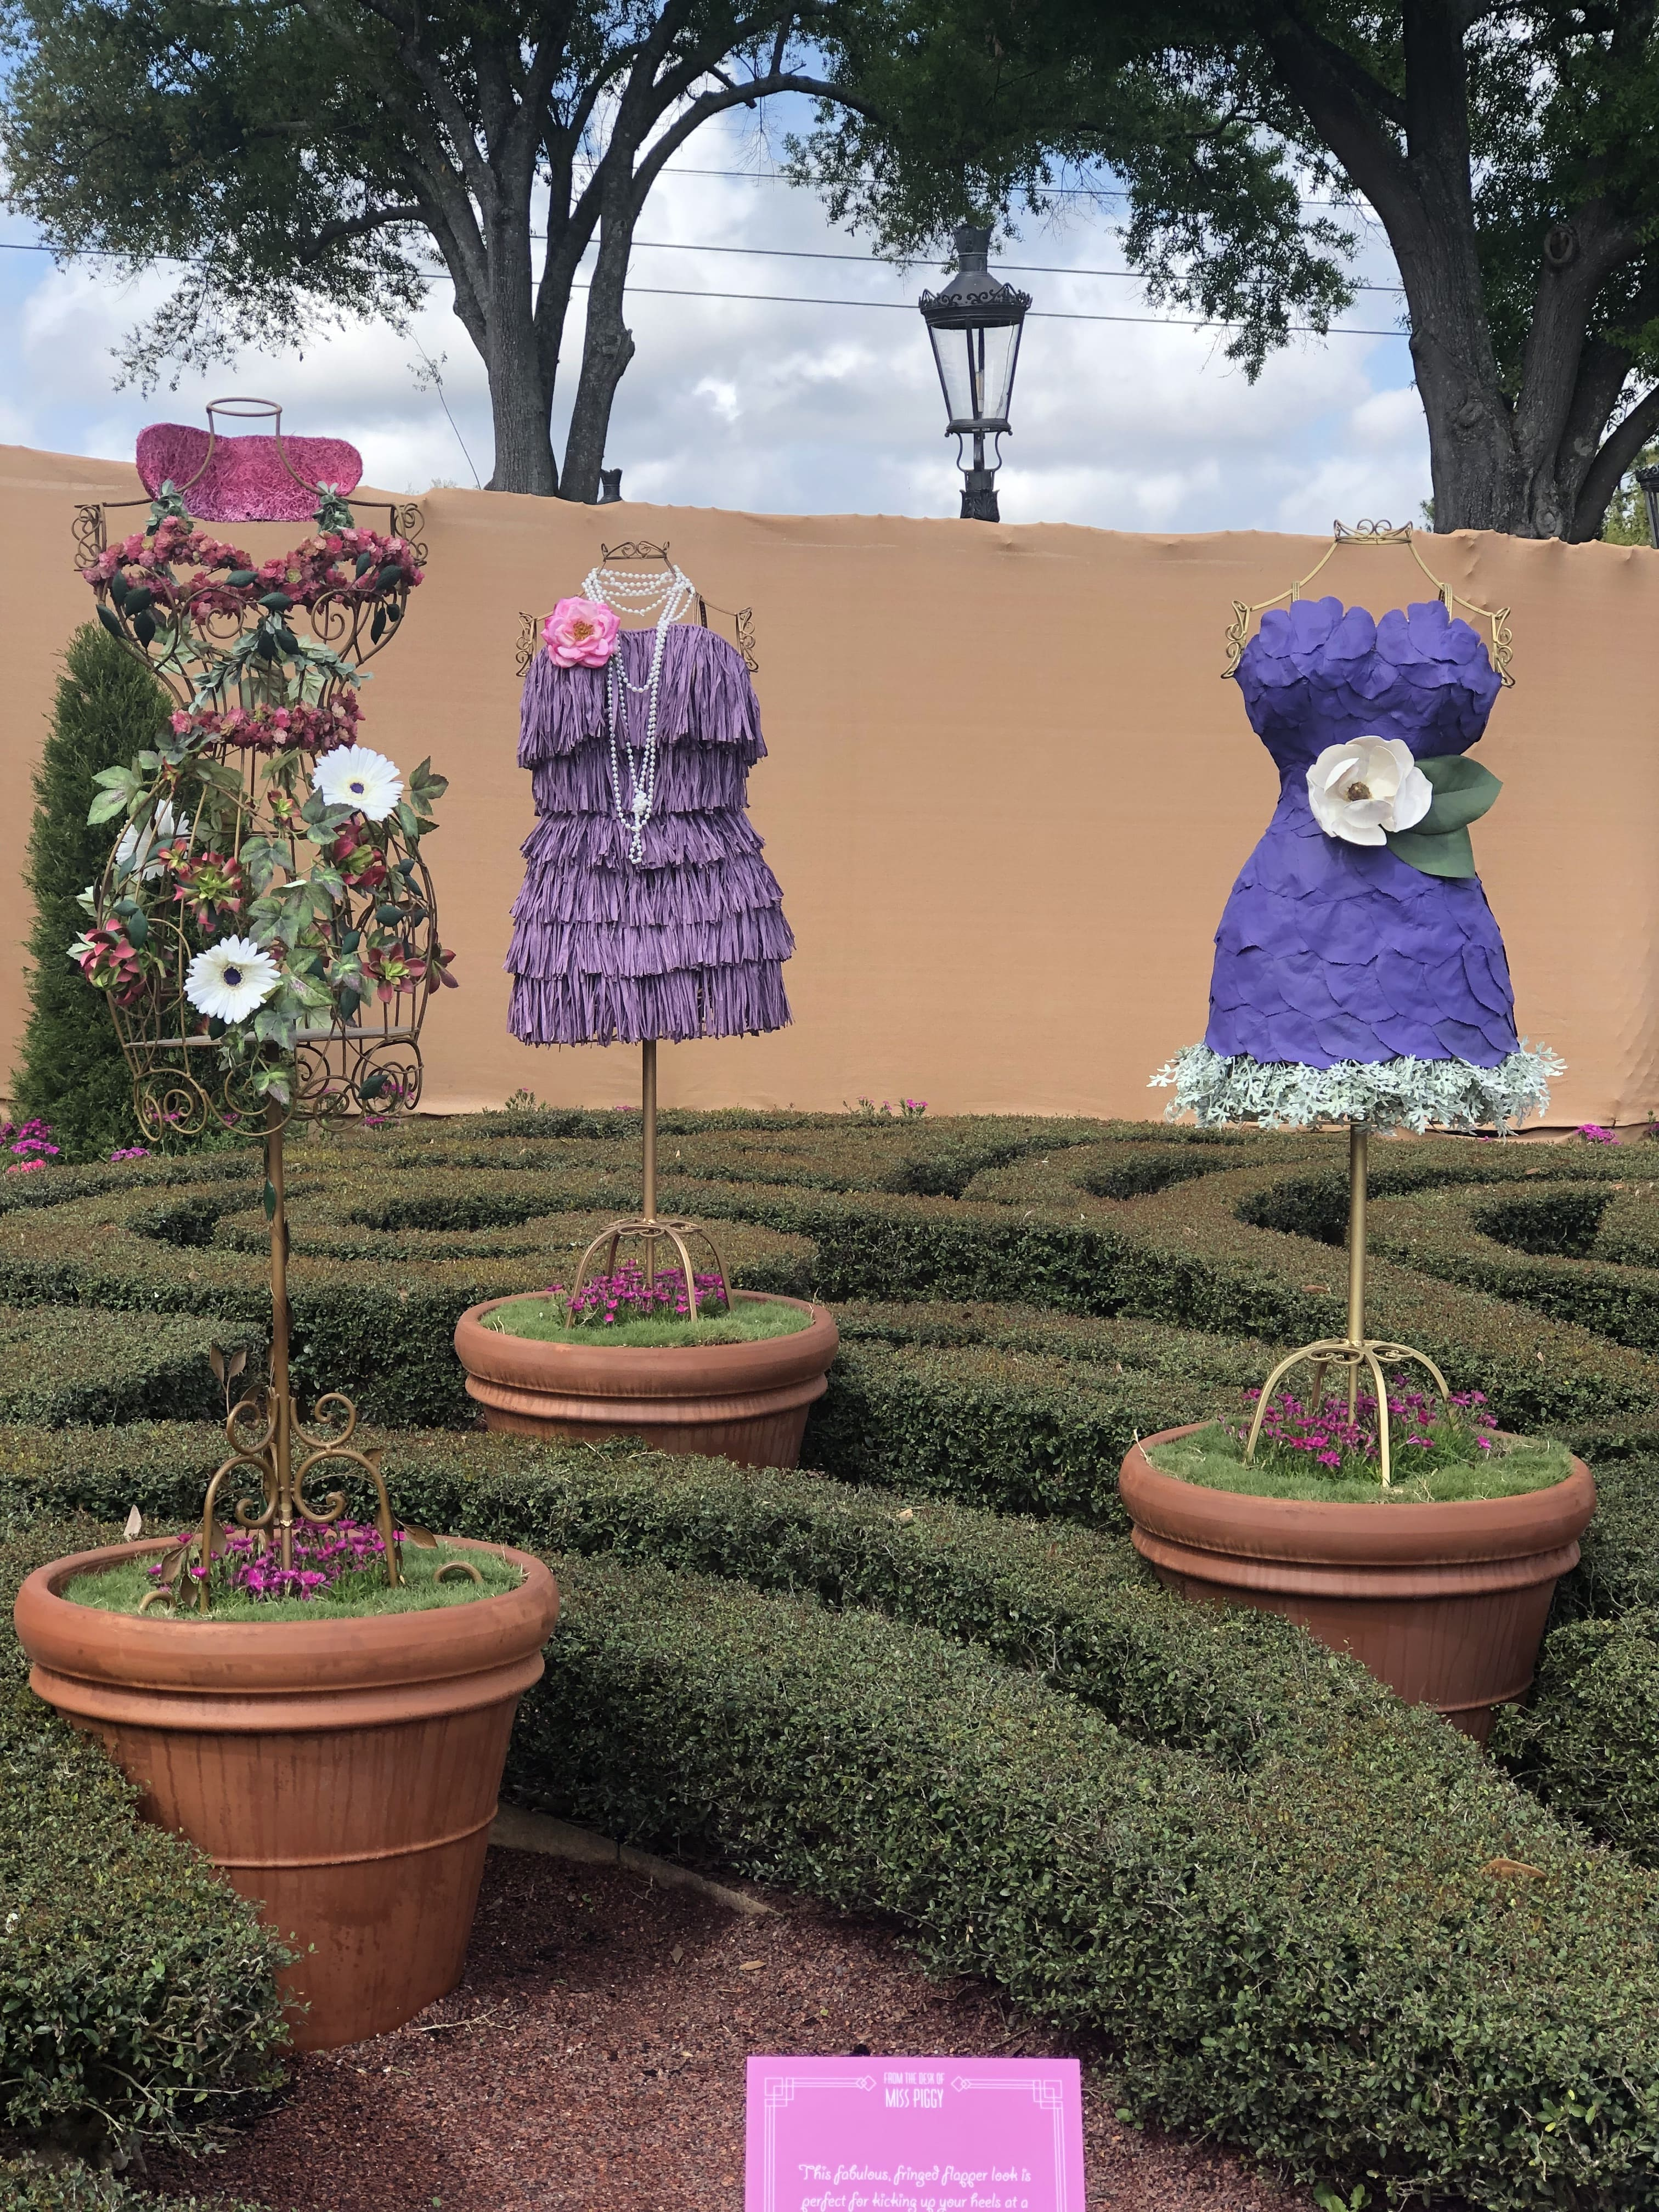 Clothing Mannequins Topiary Disney's Flower and Garden Festival